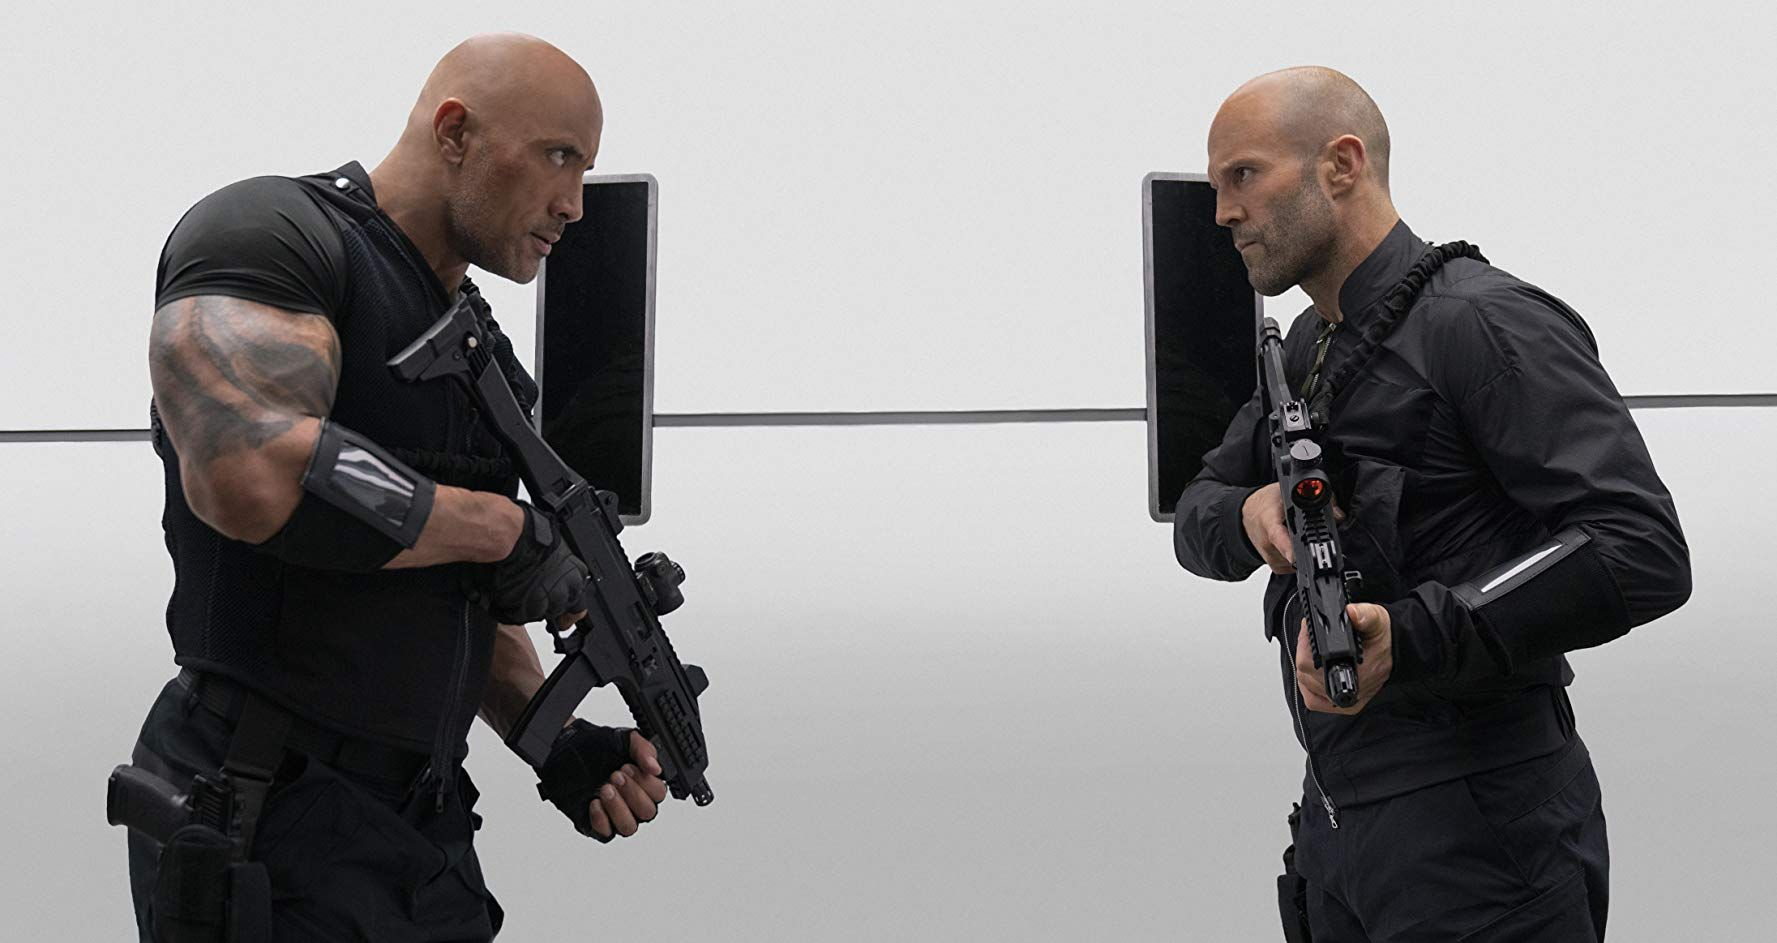 Who wins in a fight Hobbs & Shaw or Jason Bourne